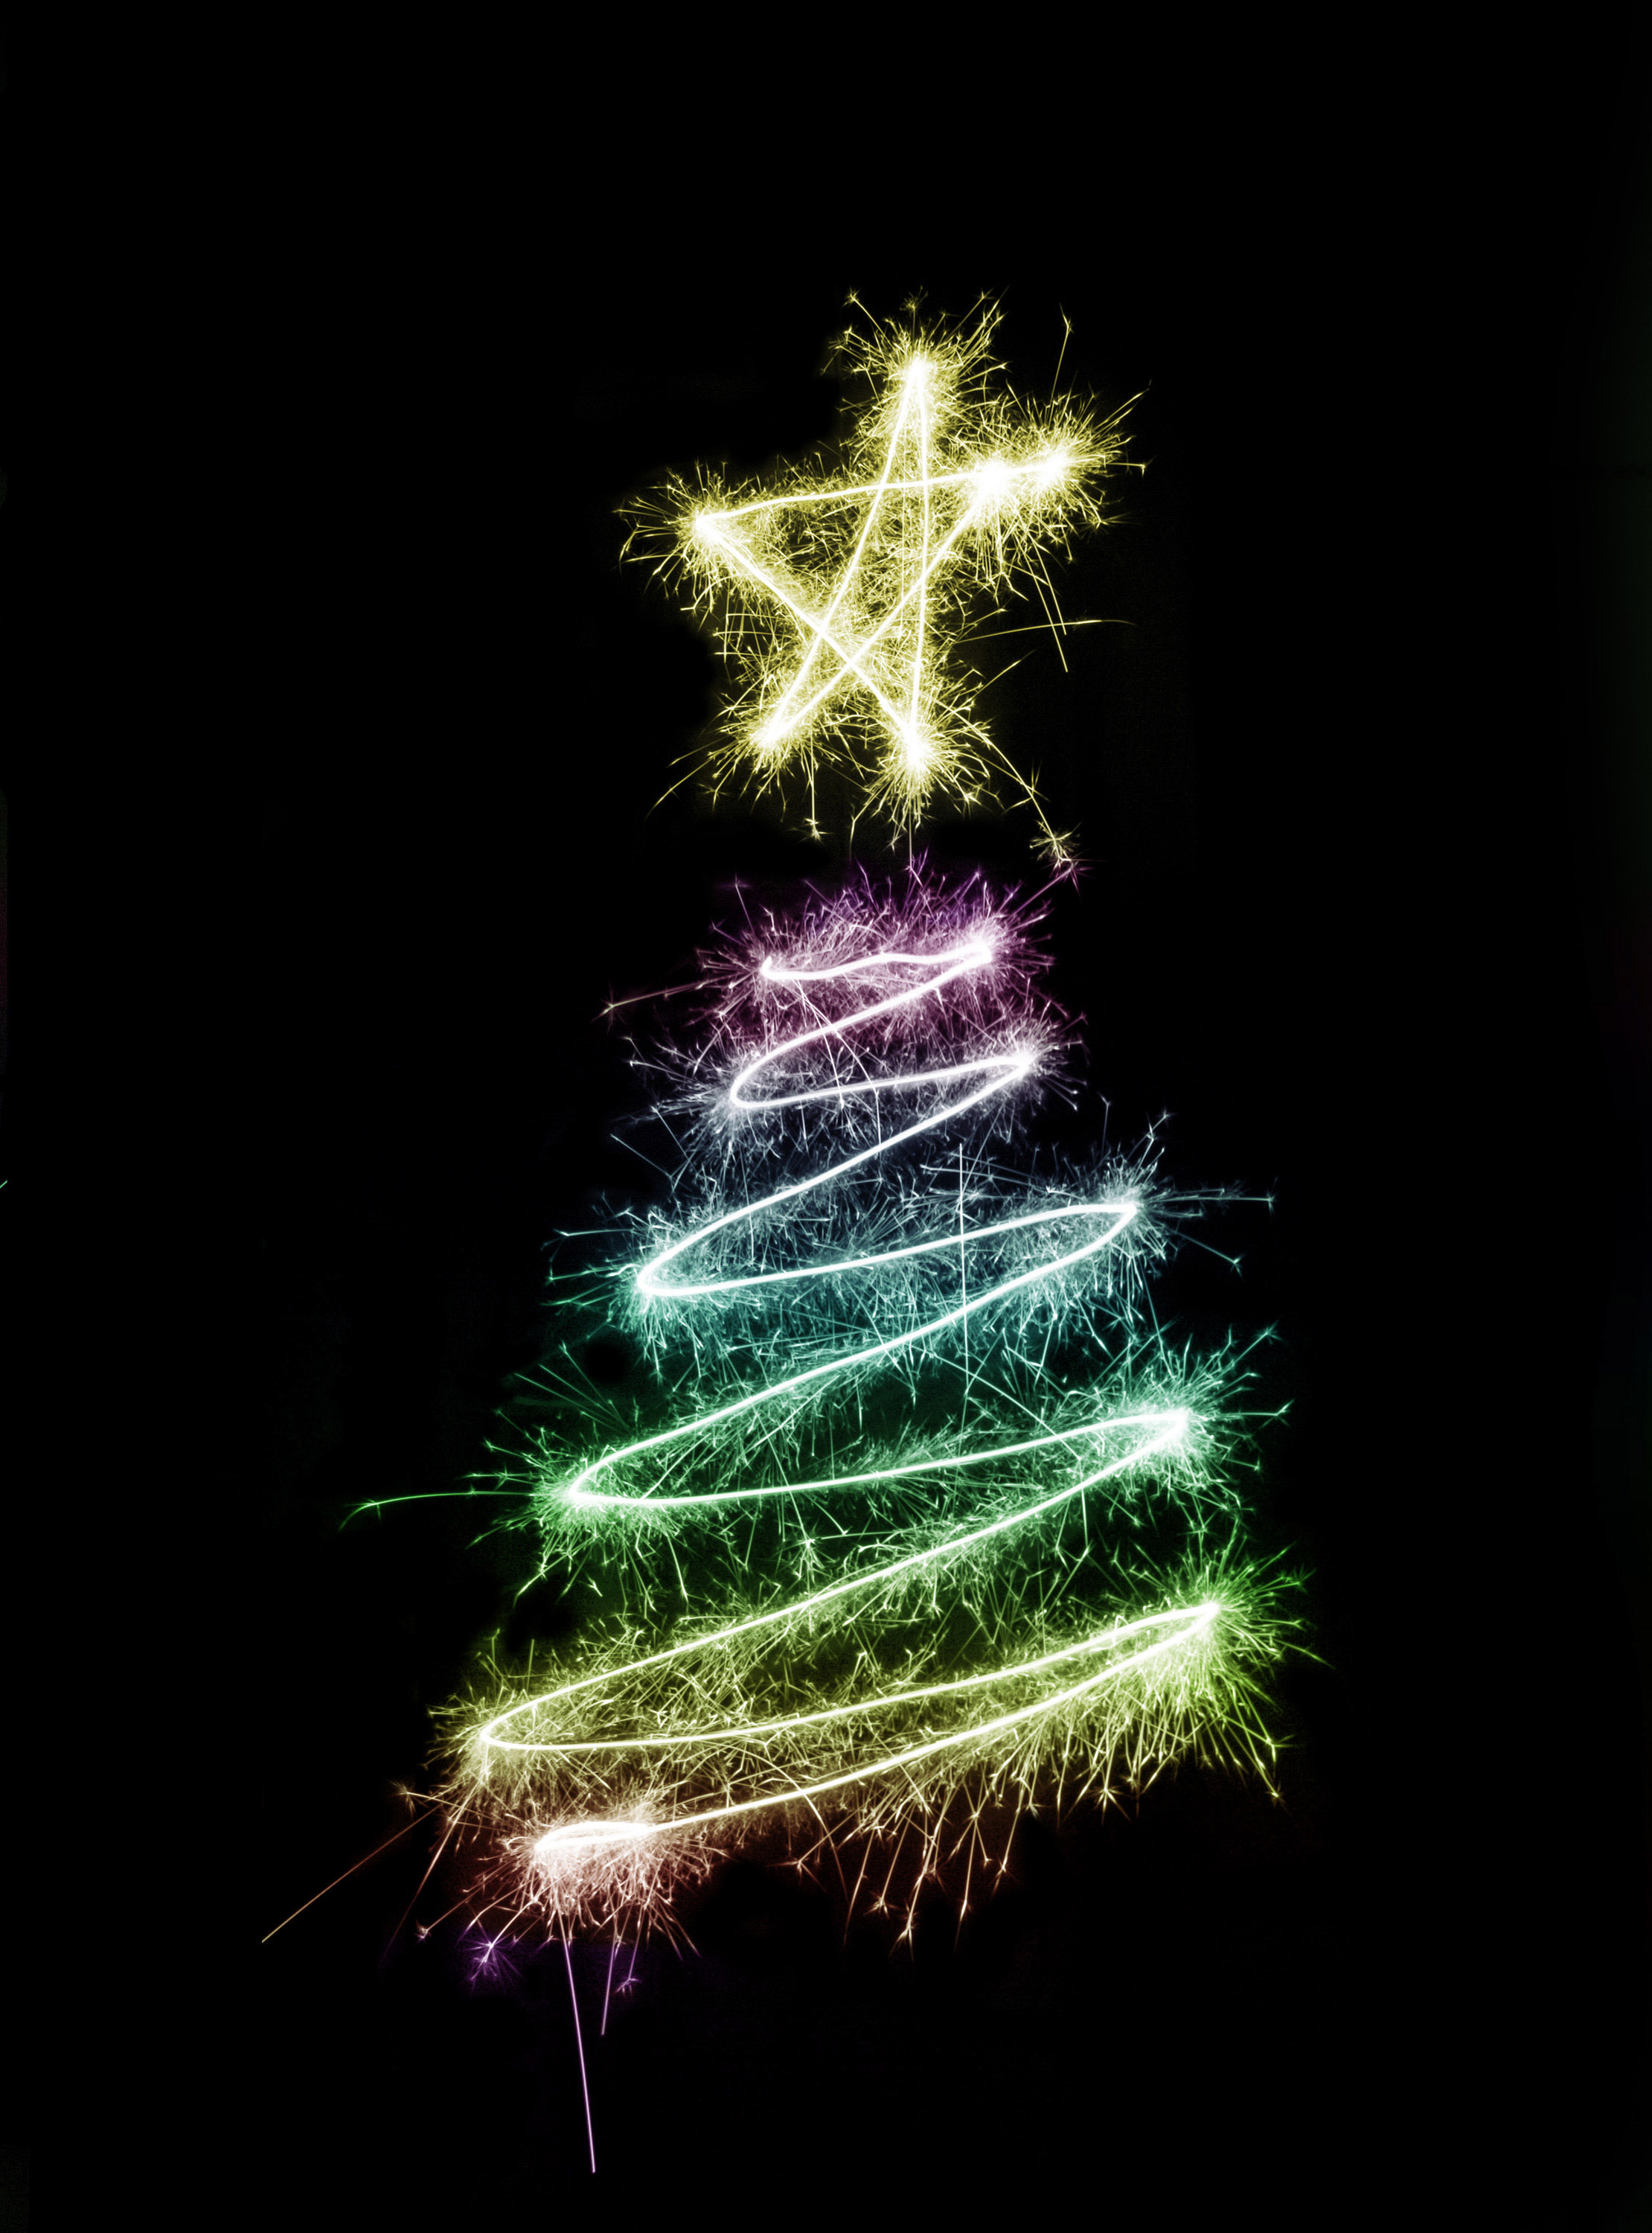 A colorful christmas tree symbol drawn with sparkler trails